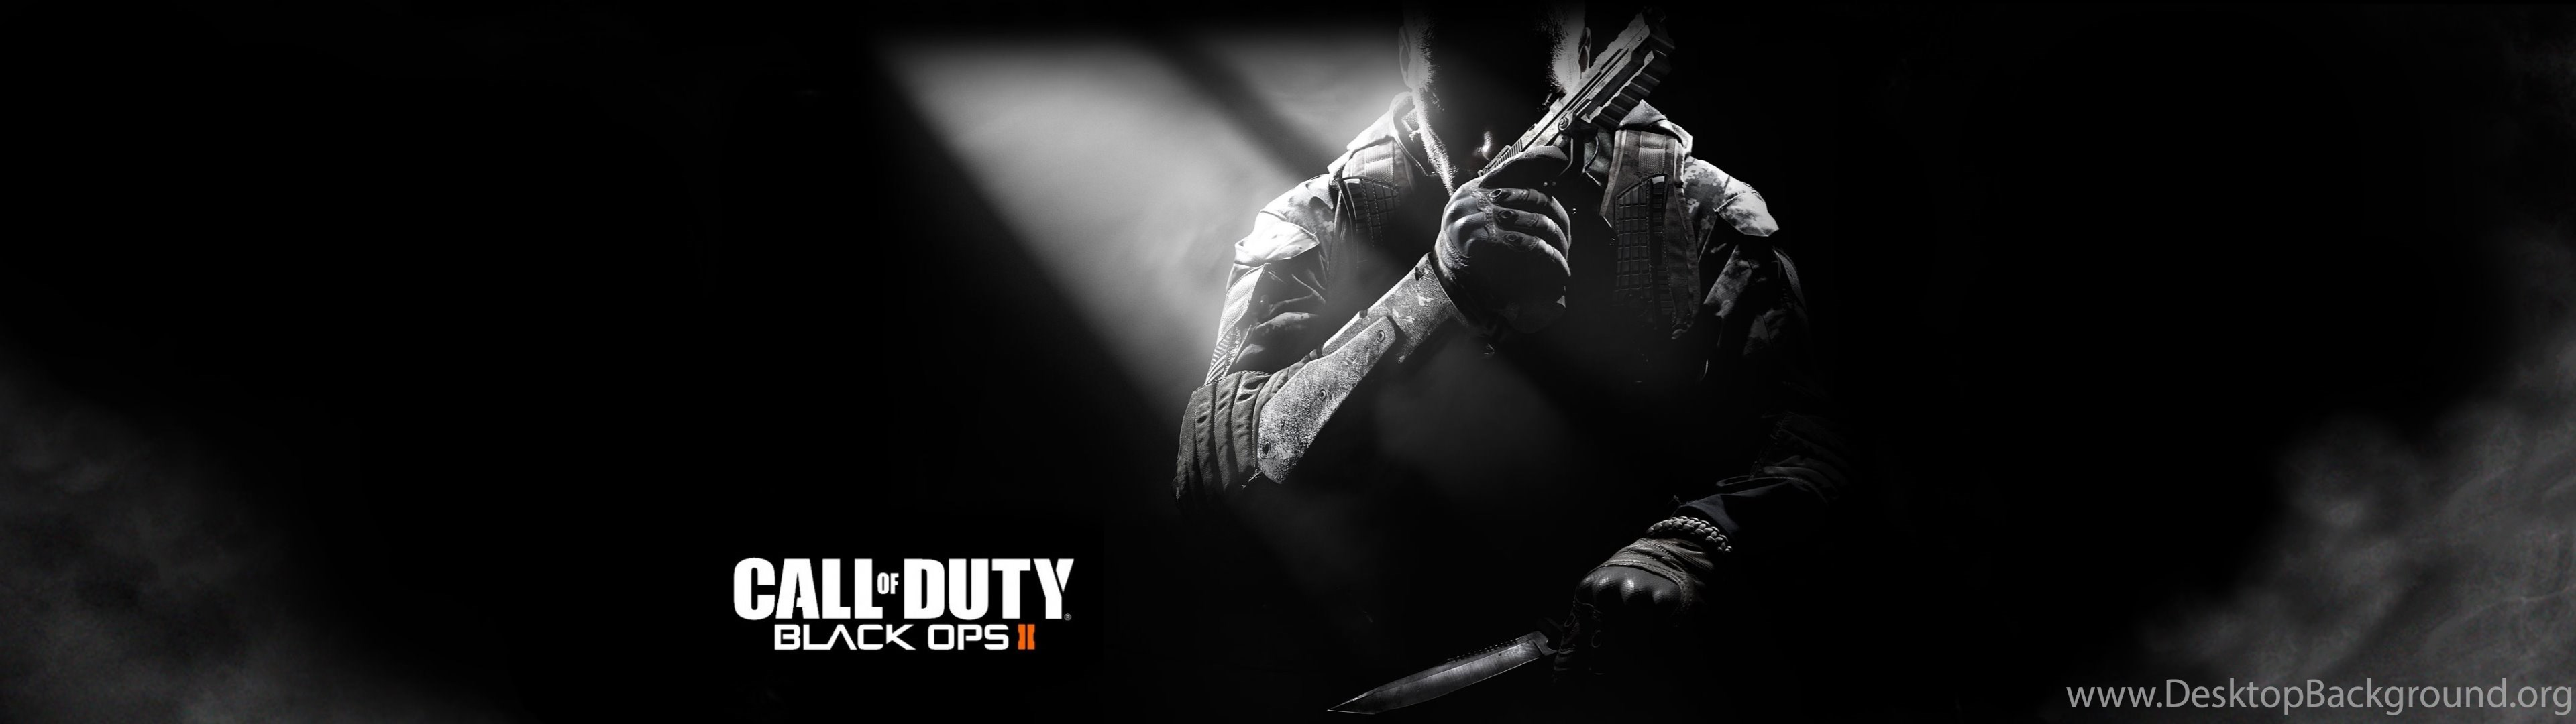 Black Ops 2 3 Monitor Wallpapers By Stomp442 On Deviantart Desktop